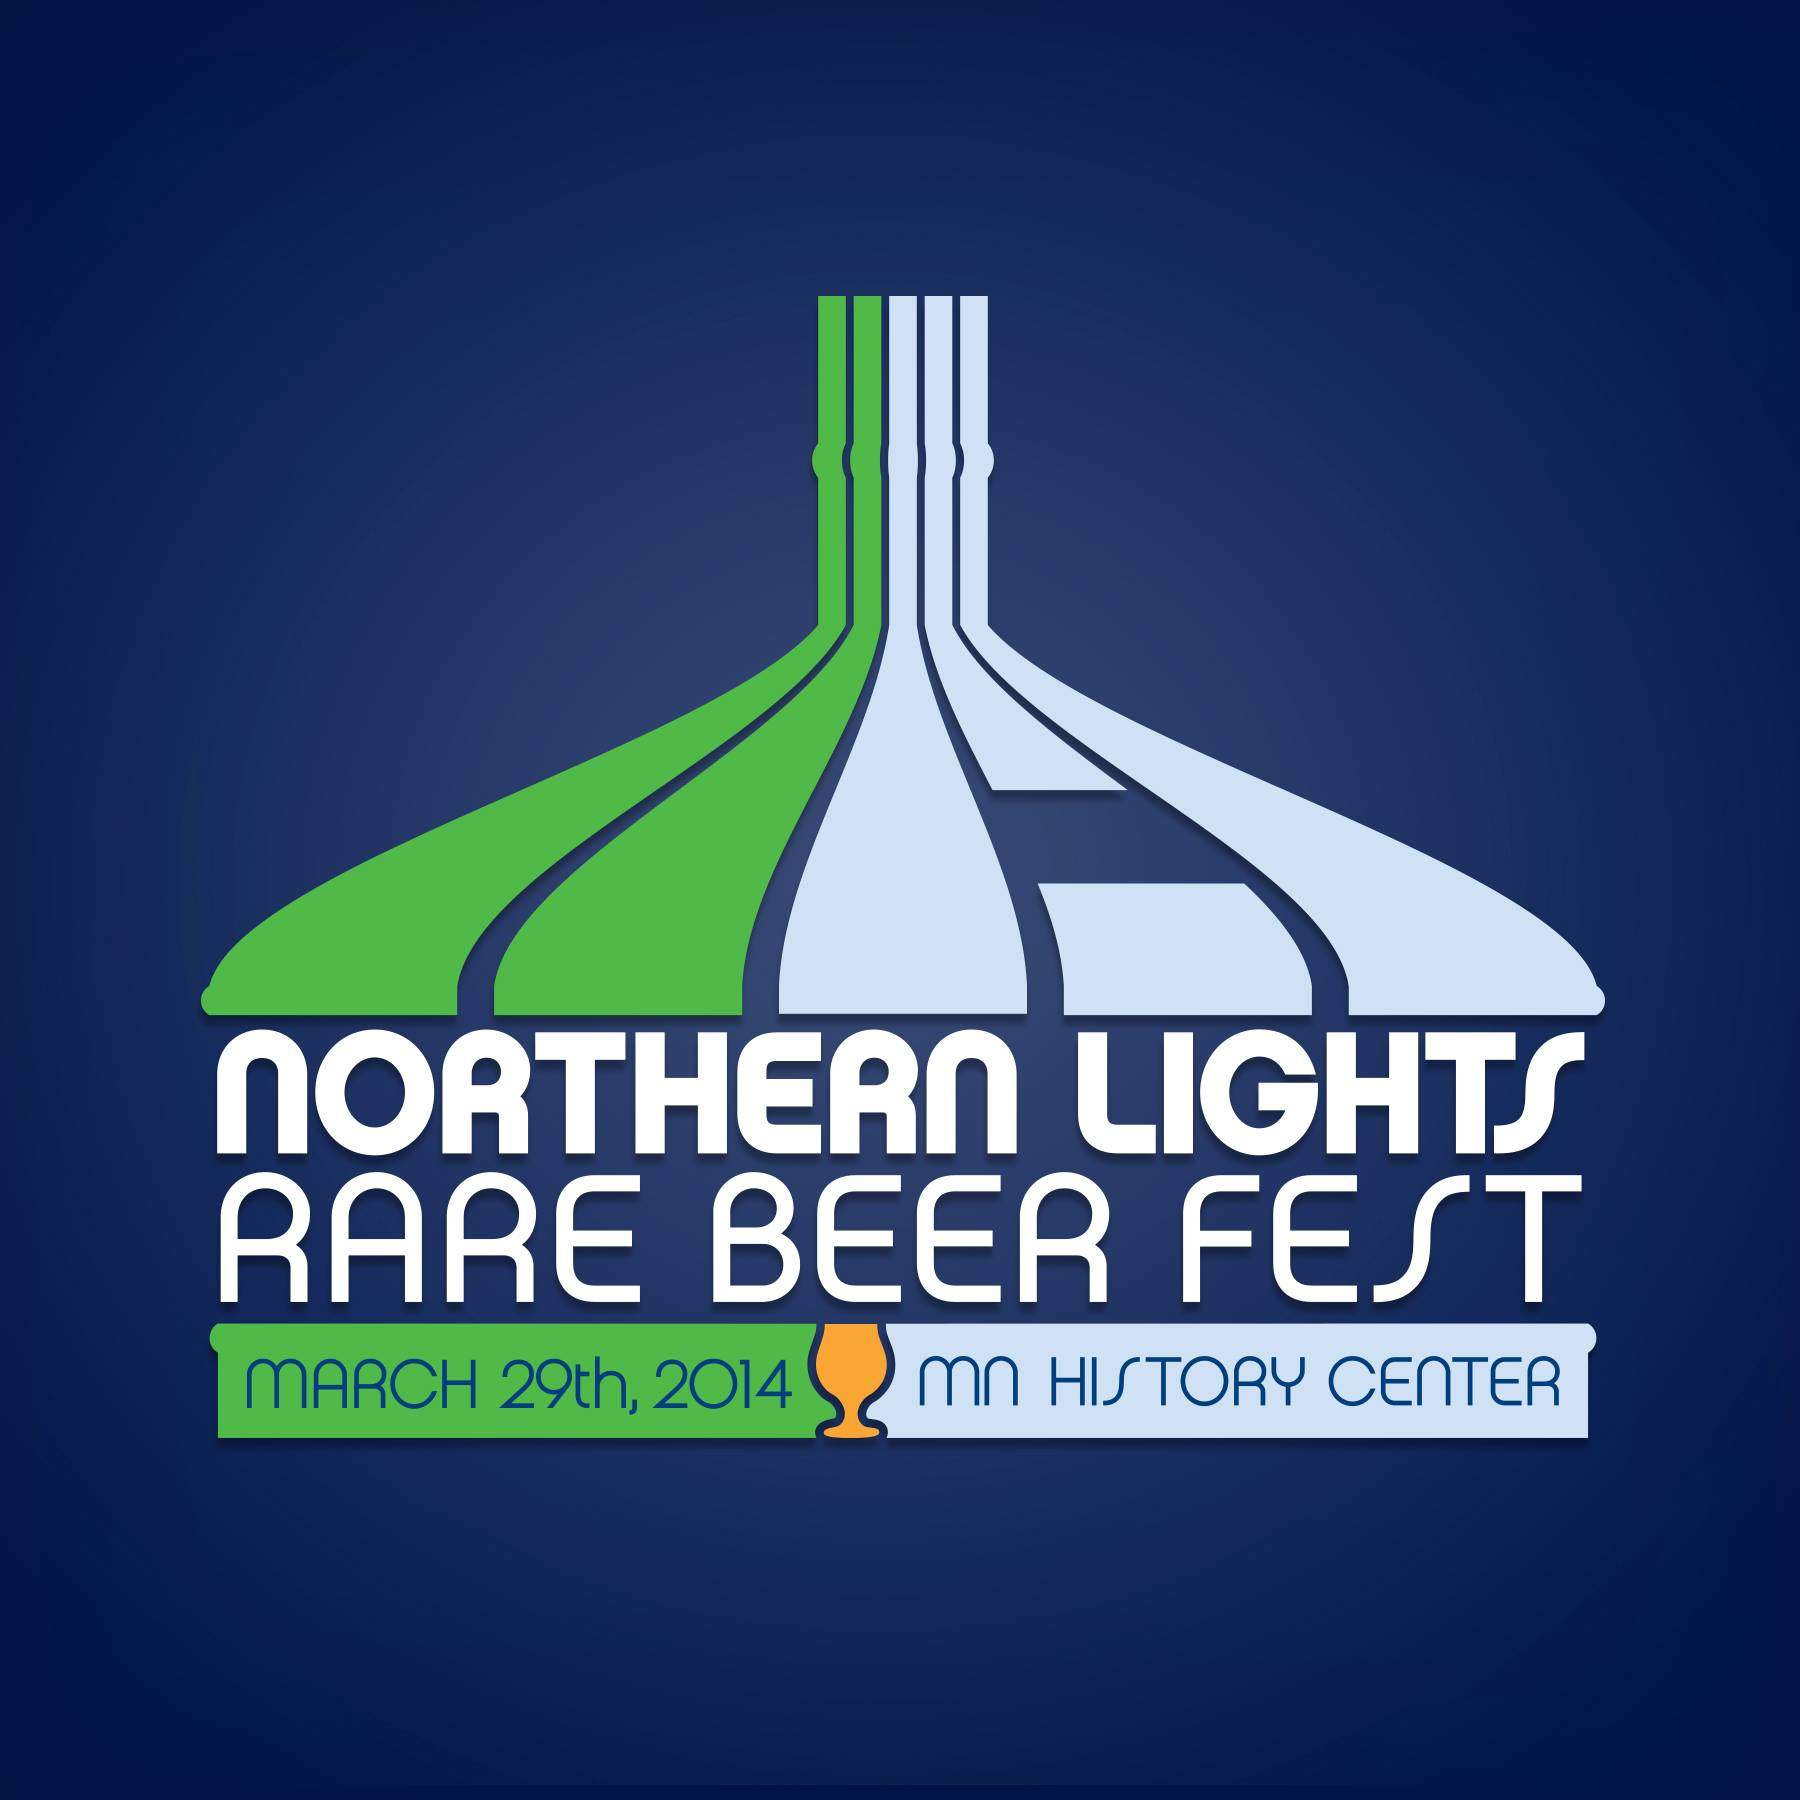 "The Northern Lights Rare Beer Fest features rare, vintage and specialty one-off beers from 30 select craft breweries from across the United States, including 10 here from Minnesota. This one-of-a-kind event will showcase the creativity and skill of some of the the top craft brewers in the country.  The 2015 Northern Lights Rare Beer Festival event program is now available. Click to download.  Date Saturday, March 12th, 2016 7 to 10 PM  Location Minnesota History Center 345 W Kellogg Blvd St Paul MN 55102  The official event hotel is the Holiday Inn St. Paul Downtown, just blocks from the fest.  Tickets $100 includes admittance to event, a commemorative tasting glass, printed program, unlimited sampling of rare beers, catered food, and live music. A portion of your ticket is donated directly to Pints For Prostates.  Tickets on-sale November 27th @10am  Food A wonderful lineup of food is complimentary to all guests with paid admission. Refreshments like coffee, hot cider, and Buddy's Orange, Grape and Strawberry sodas will be available as well.  2015 Food Selections  Petit Bahn Mi Sandwich featuring soy braised pork tenderloin, ""quick"" house kimchee & noc nam   Kimchee & Carrot Slaw Sandwich (vegetarian)  Served with:  Crispy Fried Whole Hops House Made Spent Grain Pretzels with Indeed Daytripper Cheese Sauce Chocolate Stout Ale Instant Mousse Shots Passed Bite  Surly Furious Capsules with Hops Powder Aurora Borealis Award Winners • 2015 - August Schell Brewing Co. - Starkeller Peach • 2014 - Grand Teton Brewing Co. - Huckleberry Sour  Entertainment 2015 live music provided by The Zacc Harris Trio  Parking & Transportation Event parking is $5 at the MN History Center parking lot.  Bus routes that stop near the History Center include the 16, 21 and 94. Please visit theMetro Transit website for detailed information.  UBER OFFER DETAILS  Enjoy up to $20 off your Uber ride with promo code RAREBEER15.*  To take advantage of this offer, simply download the Uber app and enter promo RAREBEER16. You can also sign up at http://uber.com/go/RAREBEER16.  Not familiar with Uber? Uber (www.uber.com) is an app that connects you with a driver at the tap of a button. Request a black car, SUV, uberX, or uberXL ride at any time using the Uber iPhone, Android, Blackberry, or Windows apps. You can track the arrival of your ride on your smartphone, payment is cashless (no need to tip), and you'll even receive a notification message when your driver arrives.  Questions? Contact Uber at t.uber.com/support.   *New Users Only.   Saint Paul Yellow Taxi: (651) 644-4433  Green and White Taxi: (651) 222-2222"